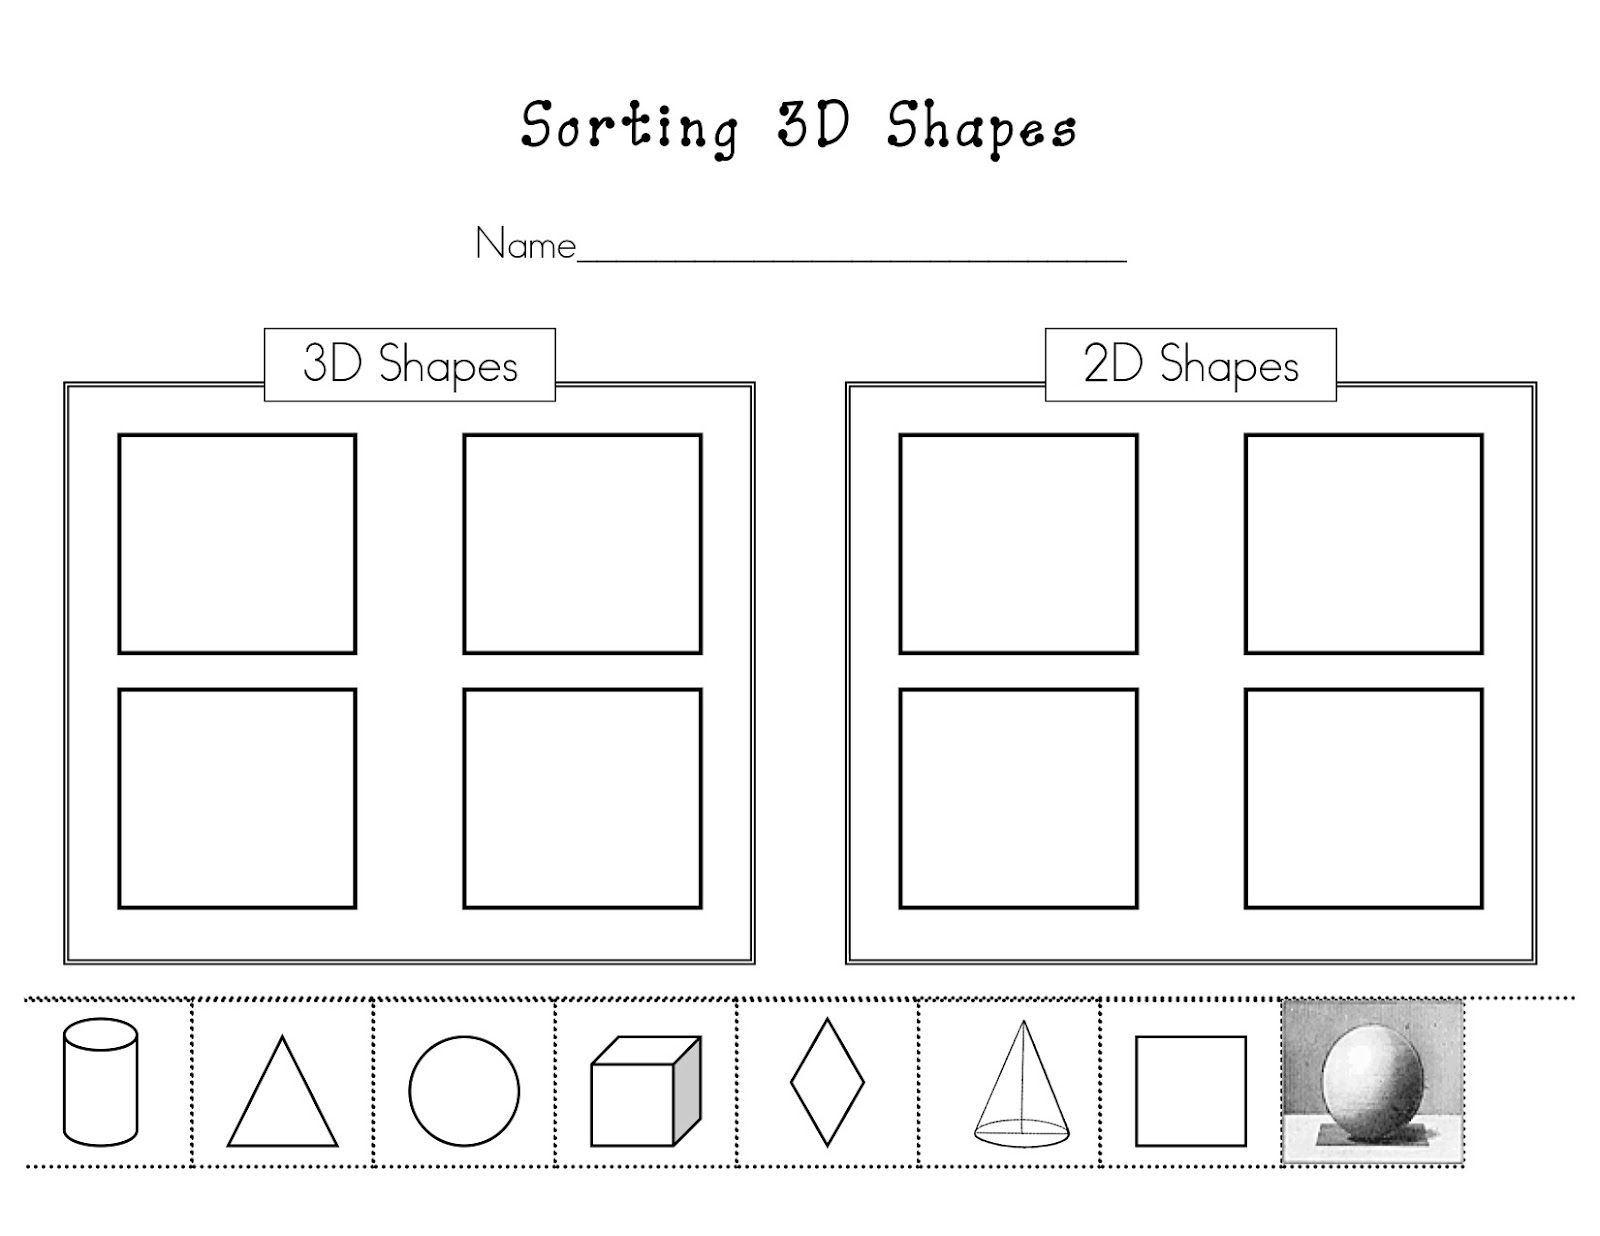 worksheet 2d And 3d Shapes Worksheet sorting 2d and 3d shapes kinder math pinterest shapes